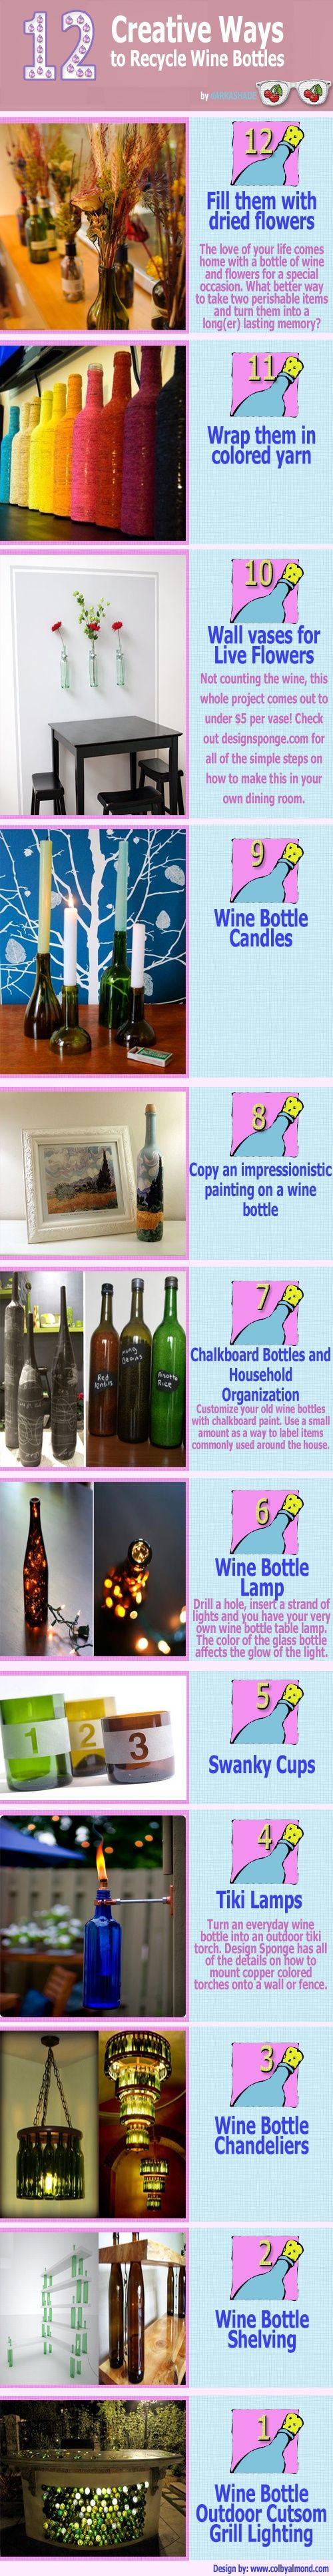 Have any empty wine bottles? 12 Creative Ways to Recycle Wine Bottles